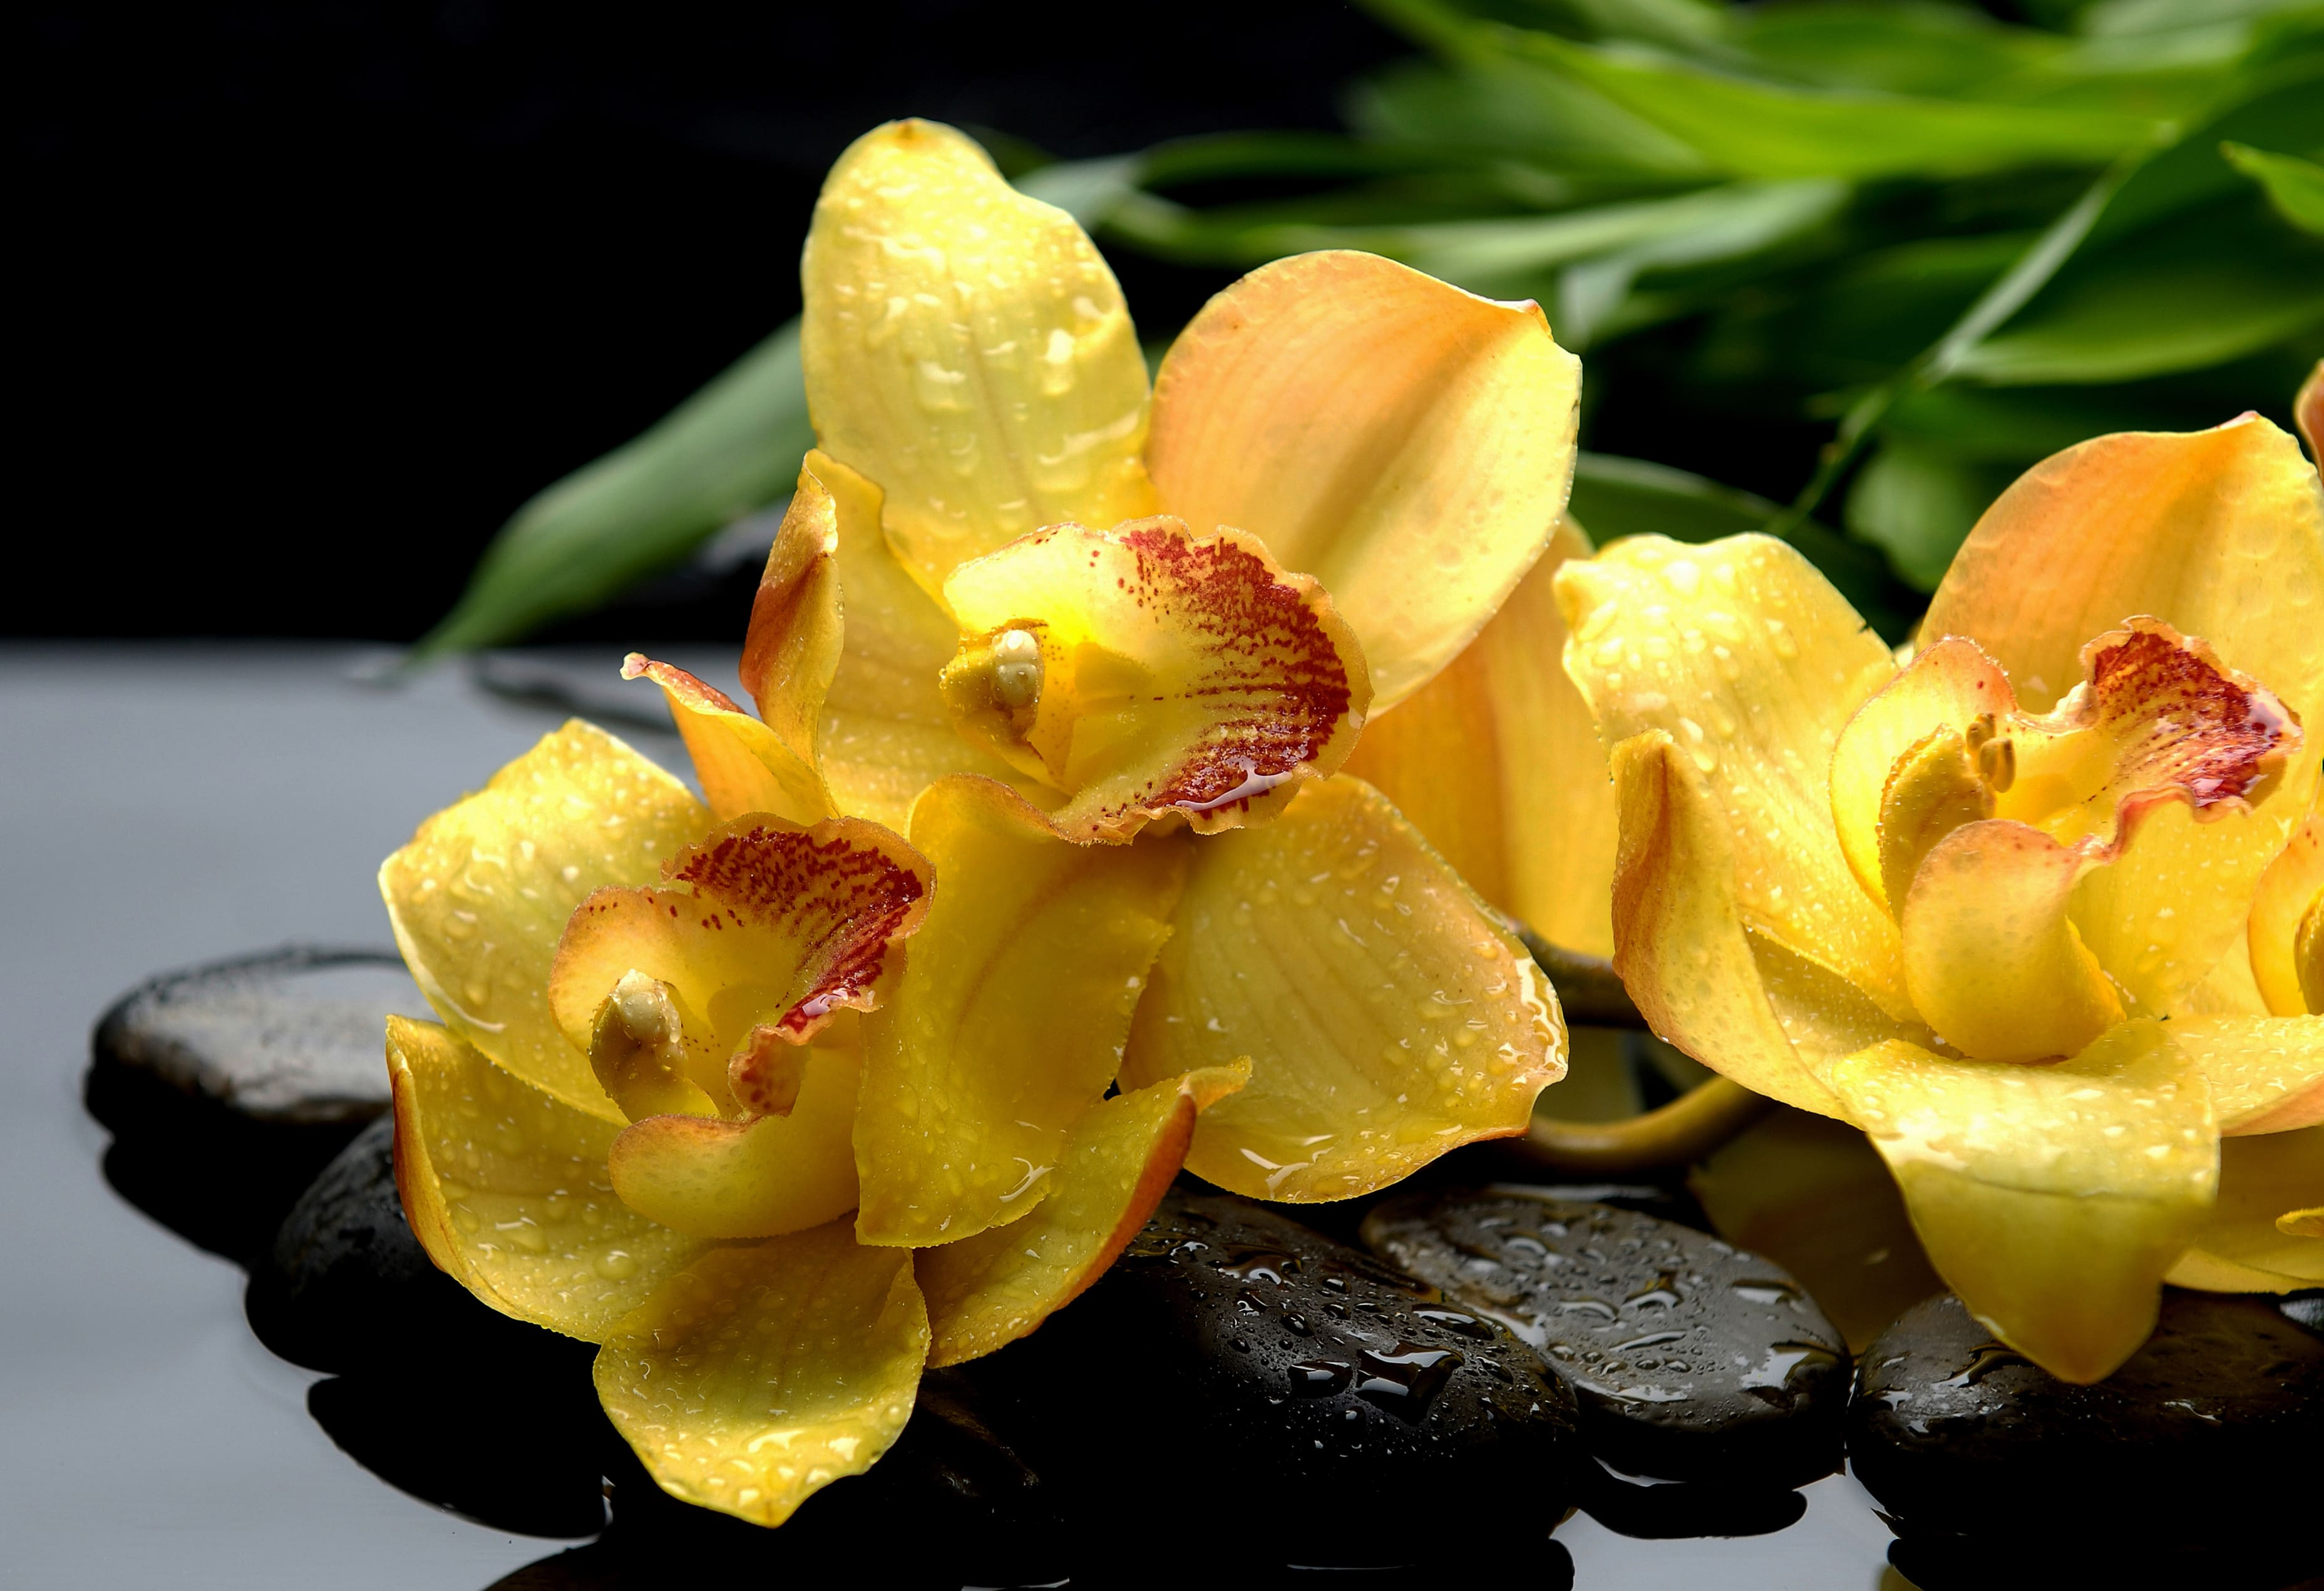 orchid-37